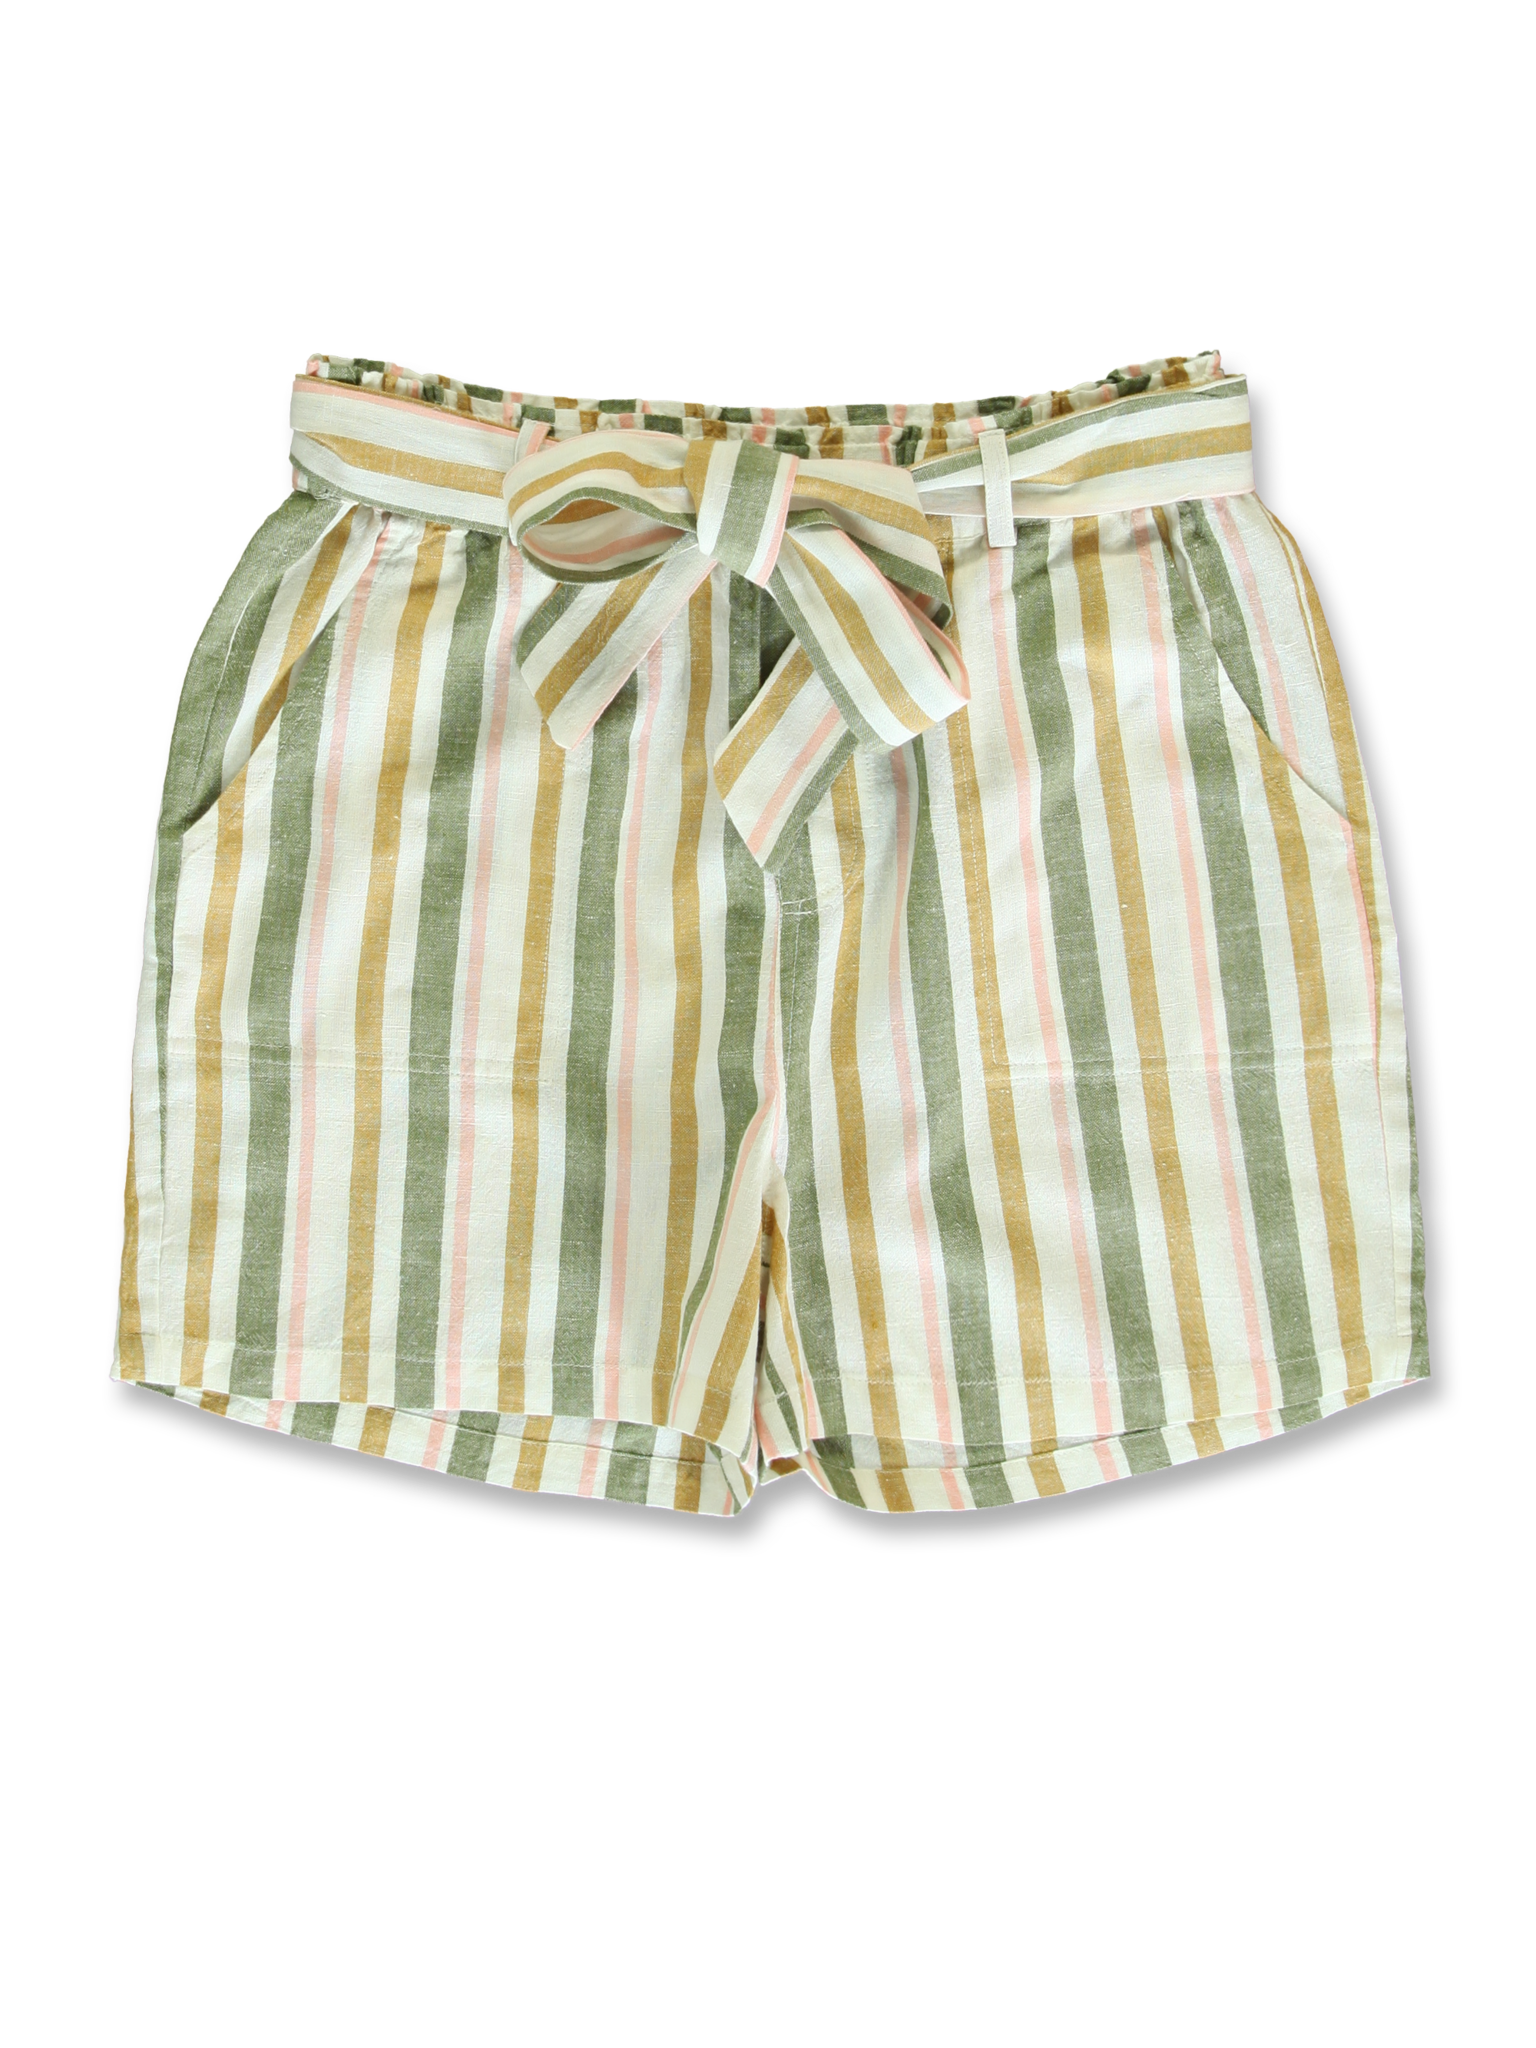 All Brands | Summerproducts Ladies | Shorts | 18 pcs/box